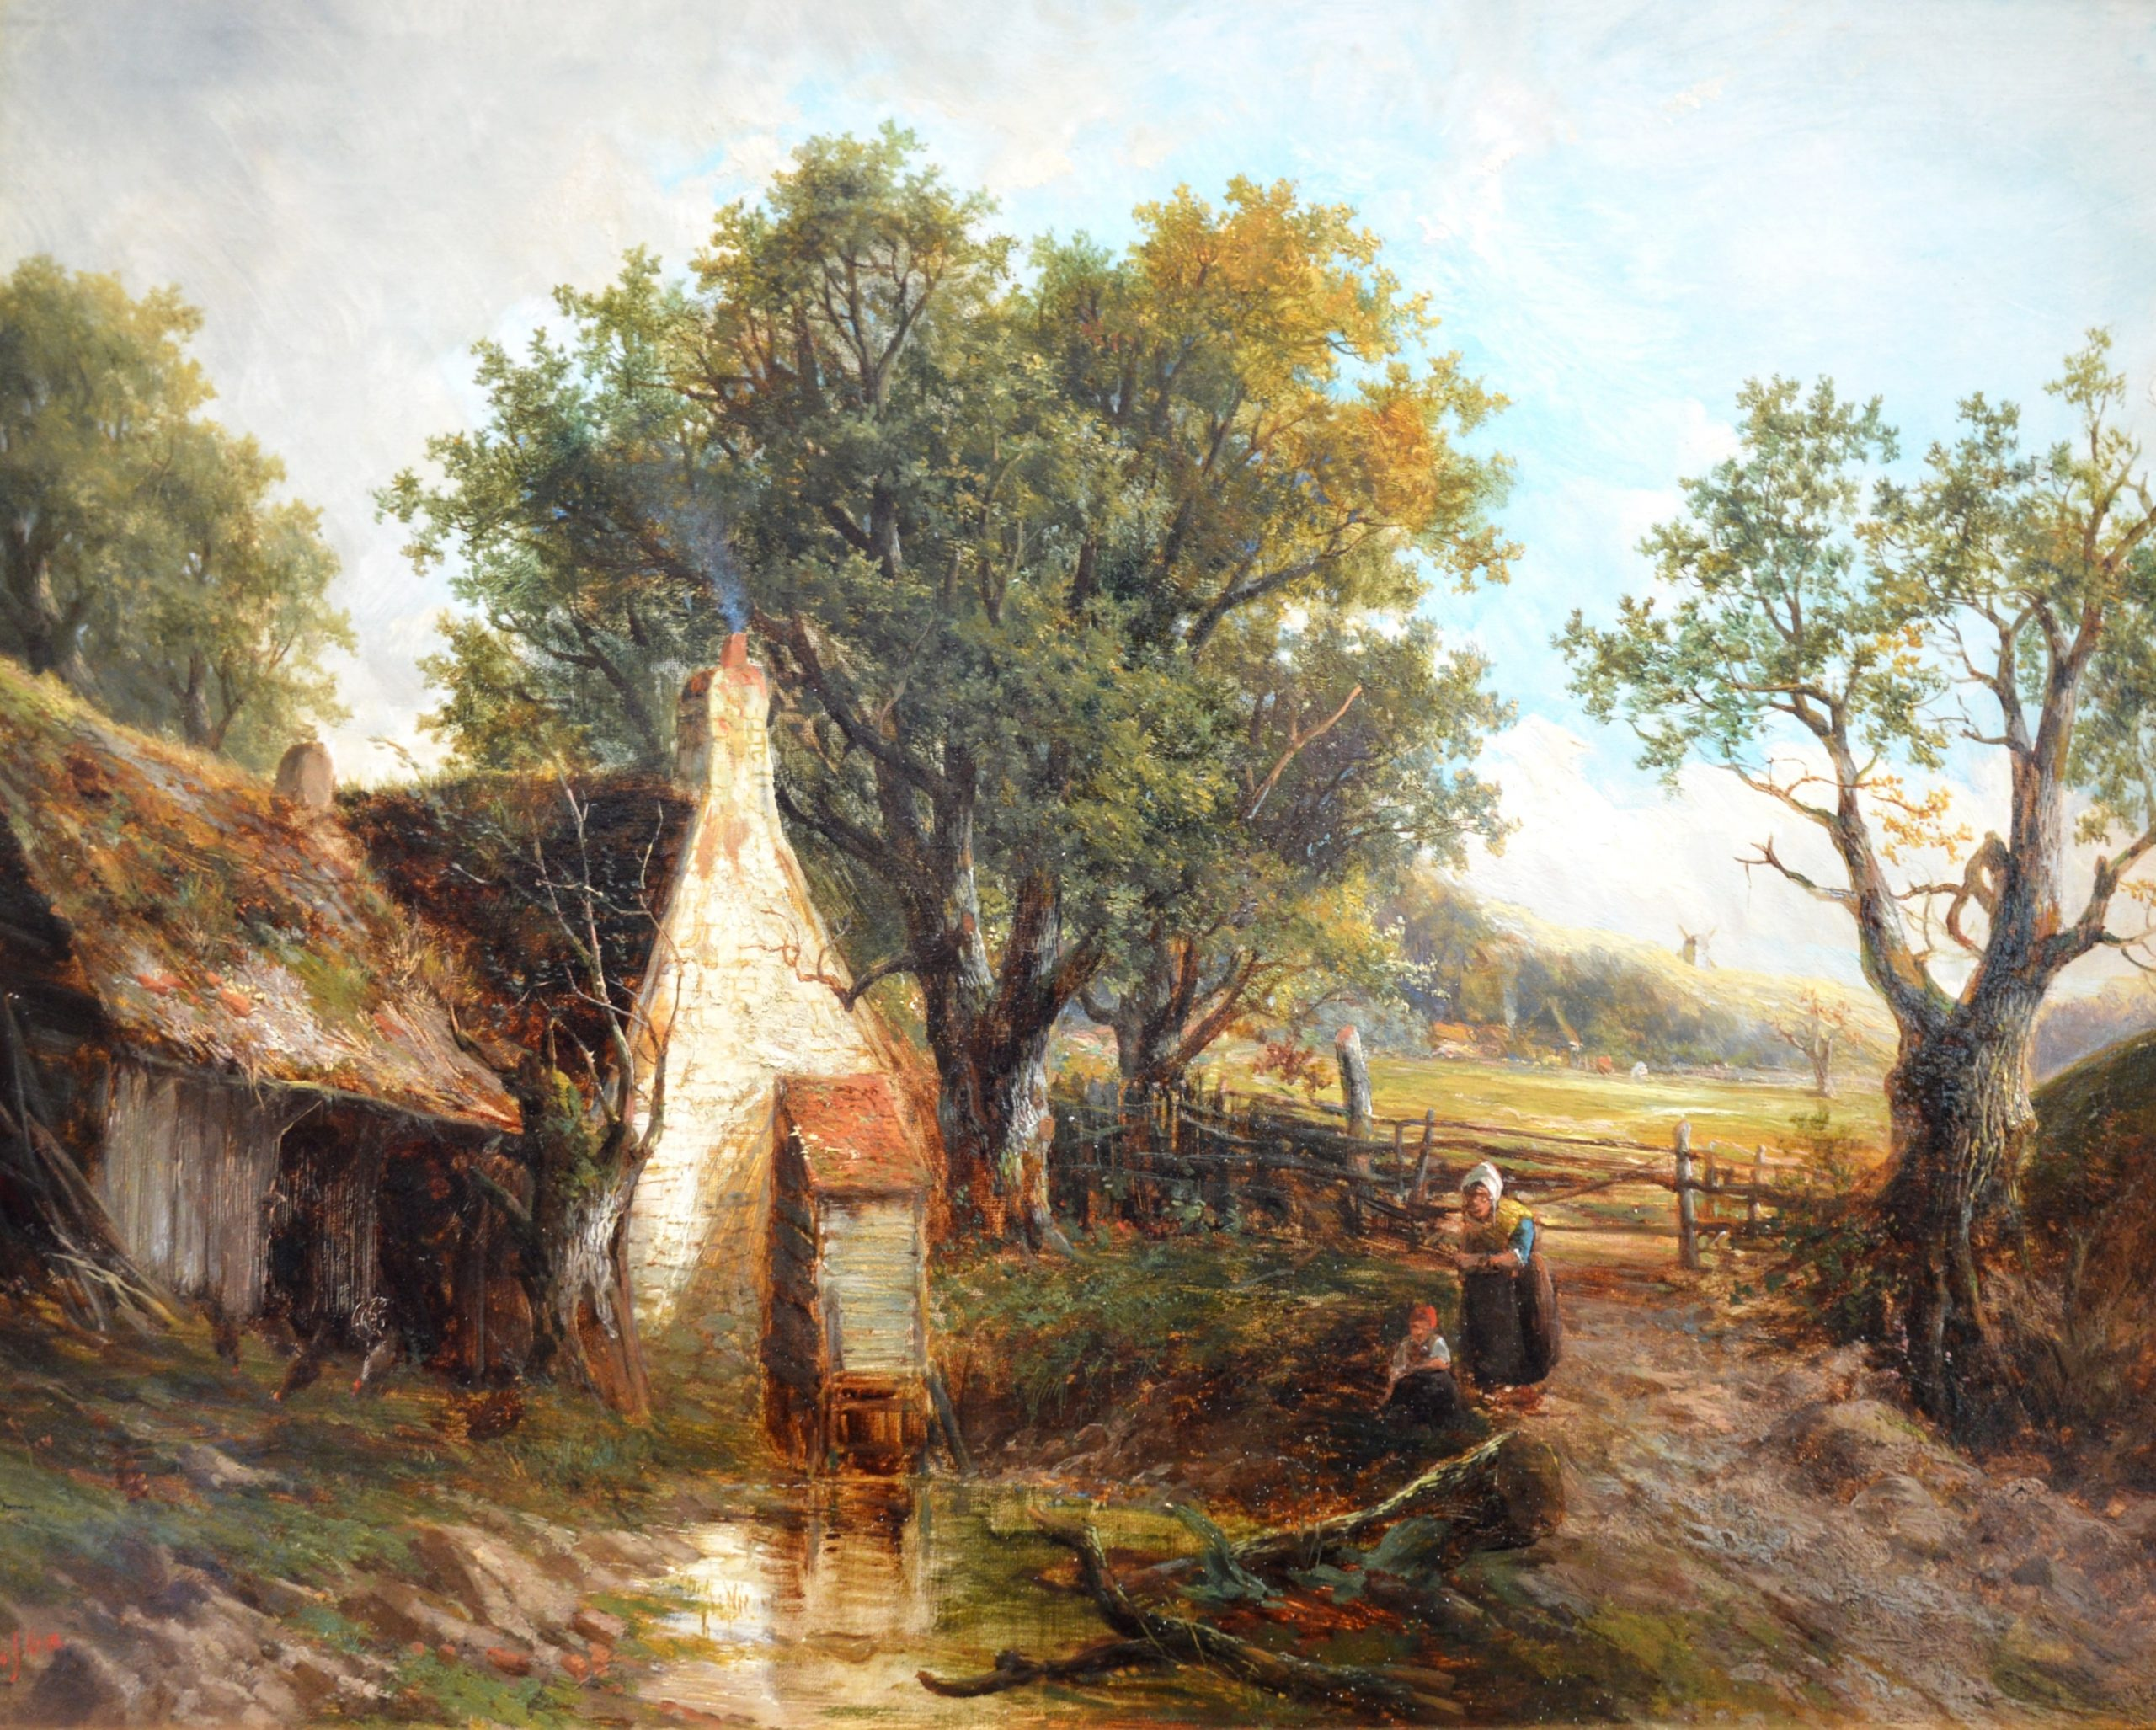 A Norfolk Stream - 19th Century English Landscape Oil Painting Image